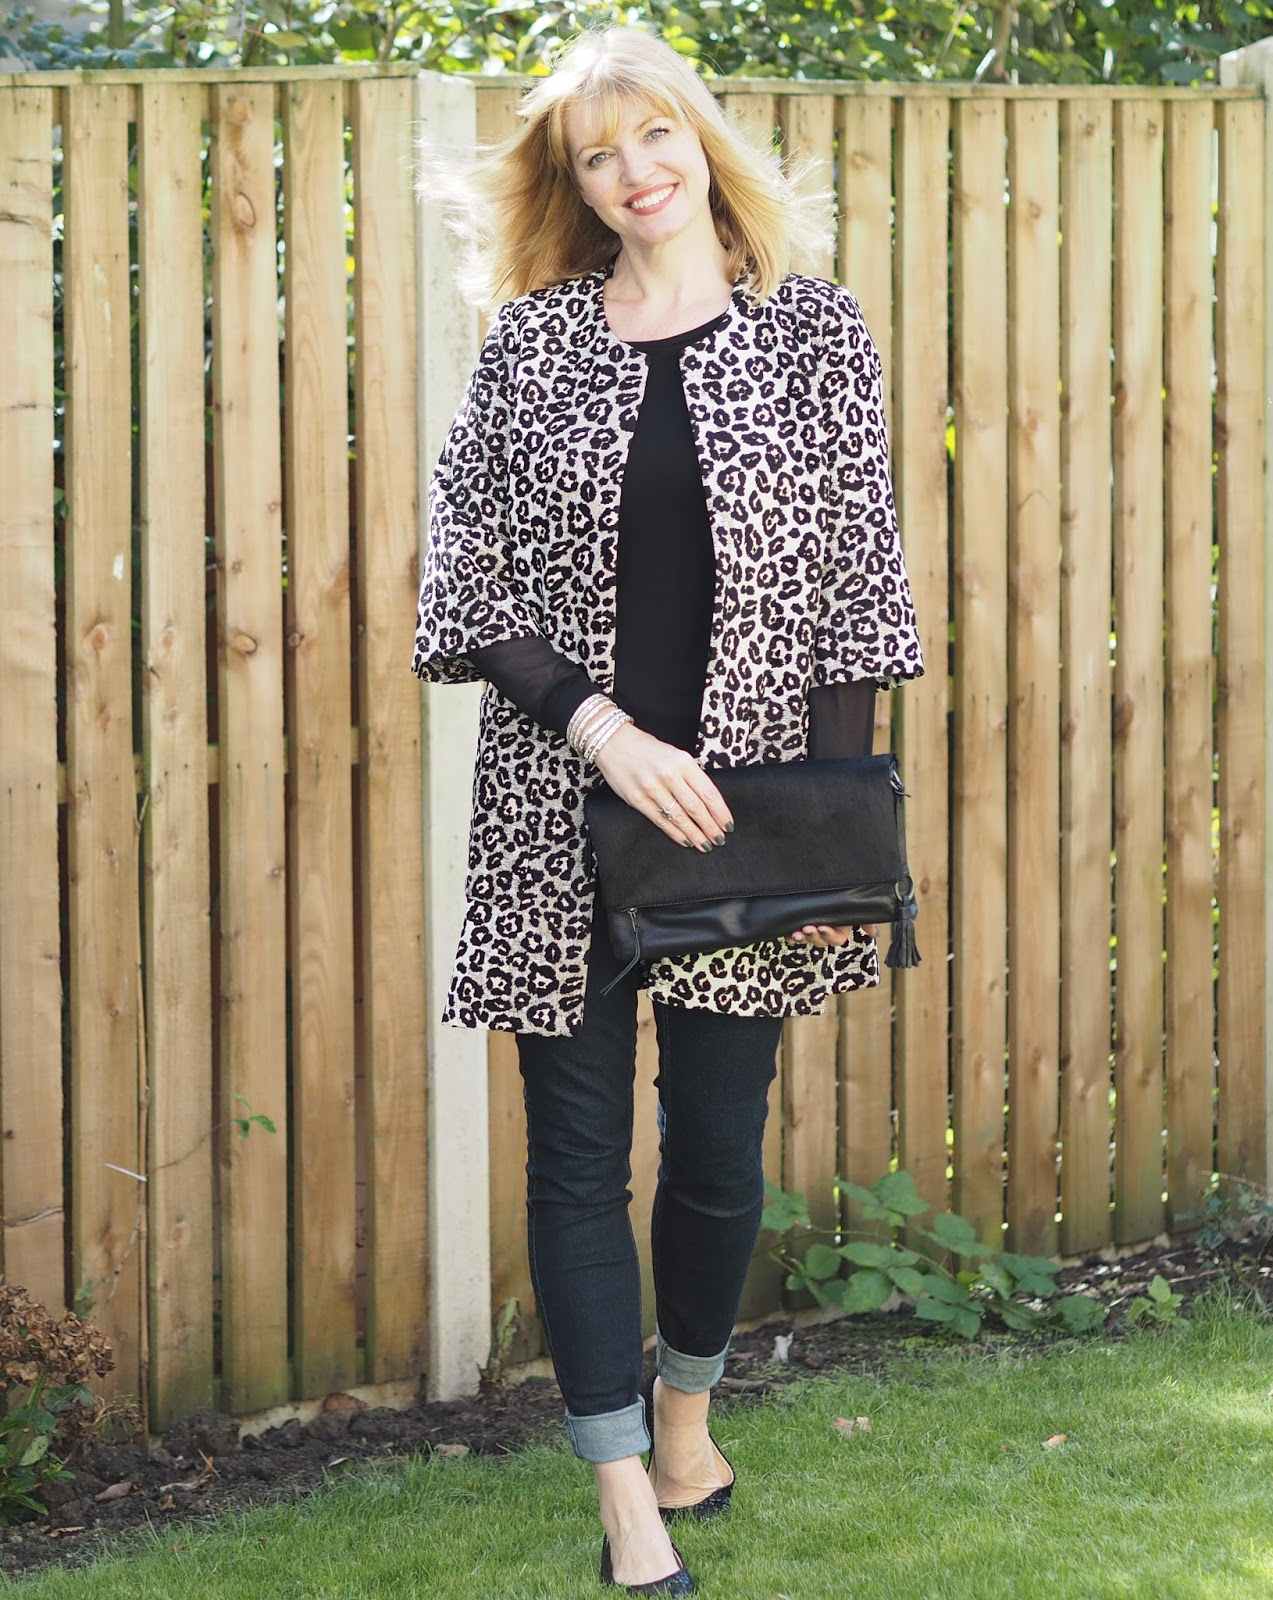 Leopard animal jacquard jacket over 40 style